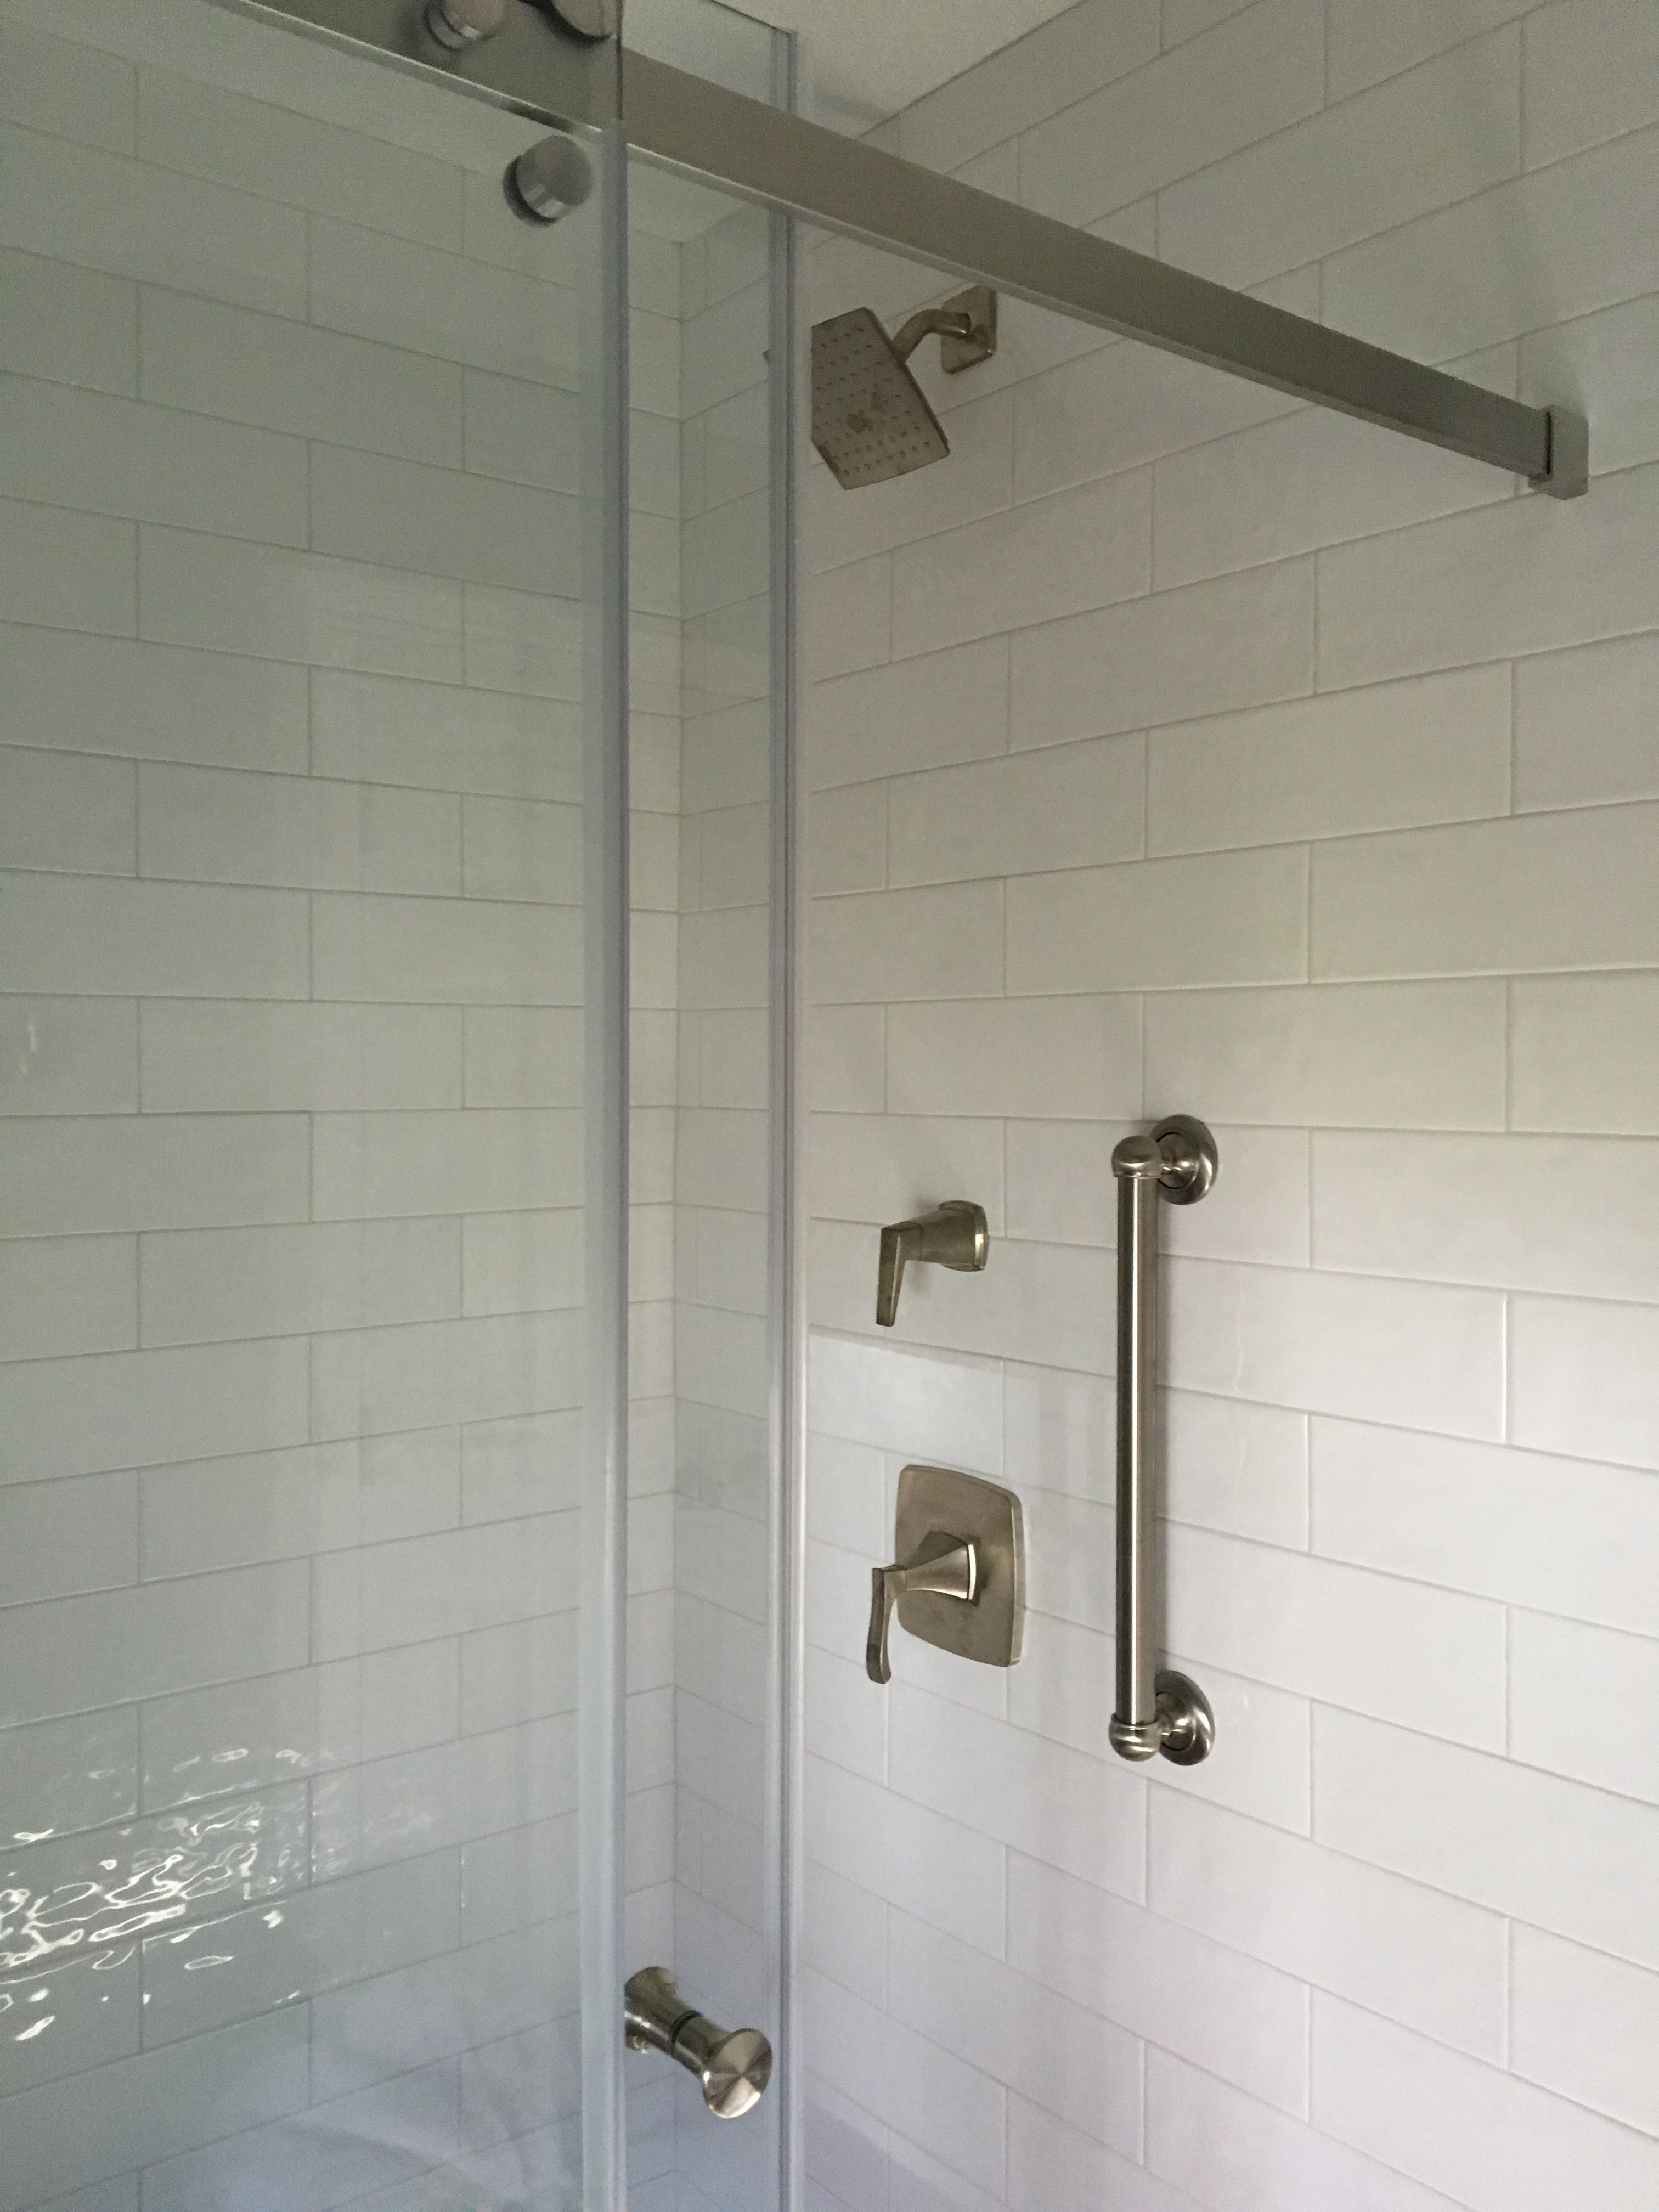 White subway tile creates a clean look in this custom shower white subway tile creates a clean look in this custom shower installation dailygadgetfo Gallery